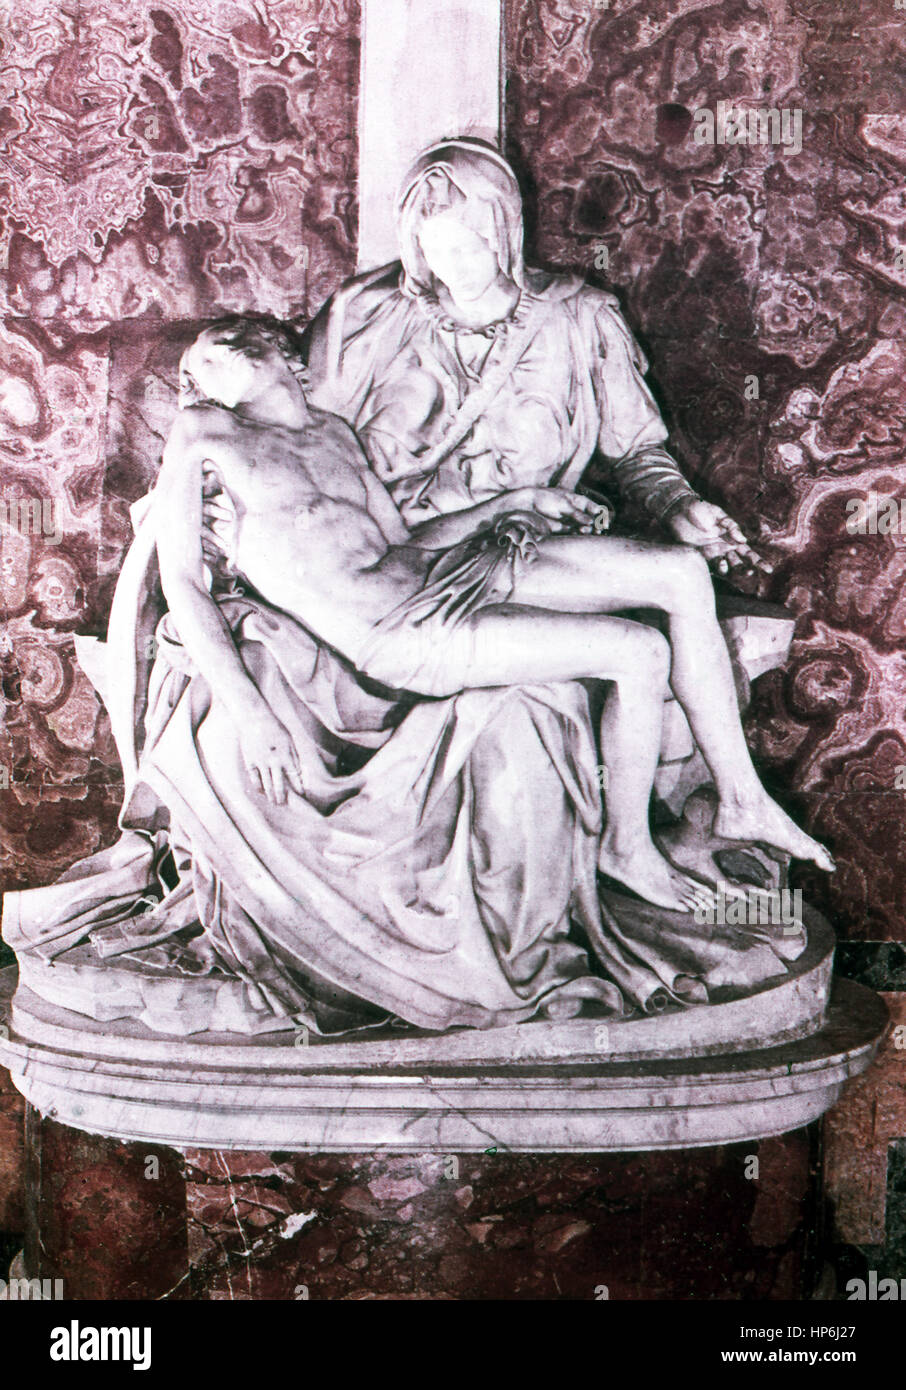 This sculpture by the Italian sculptor painter Michelangelo (1475-1564) is titled Pieta. The Italian sculptor, painter, - Stock Image